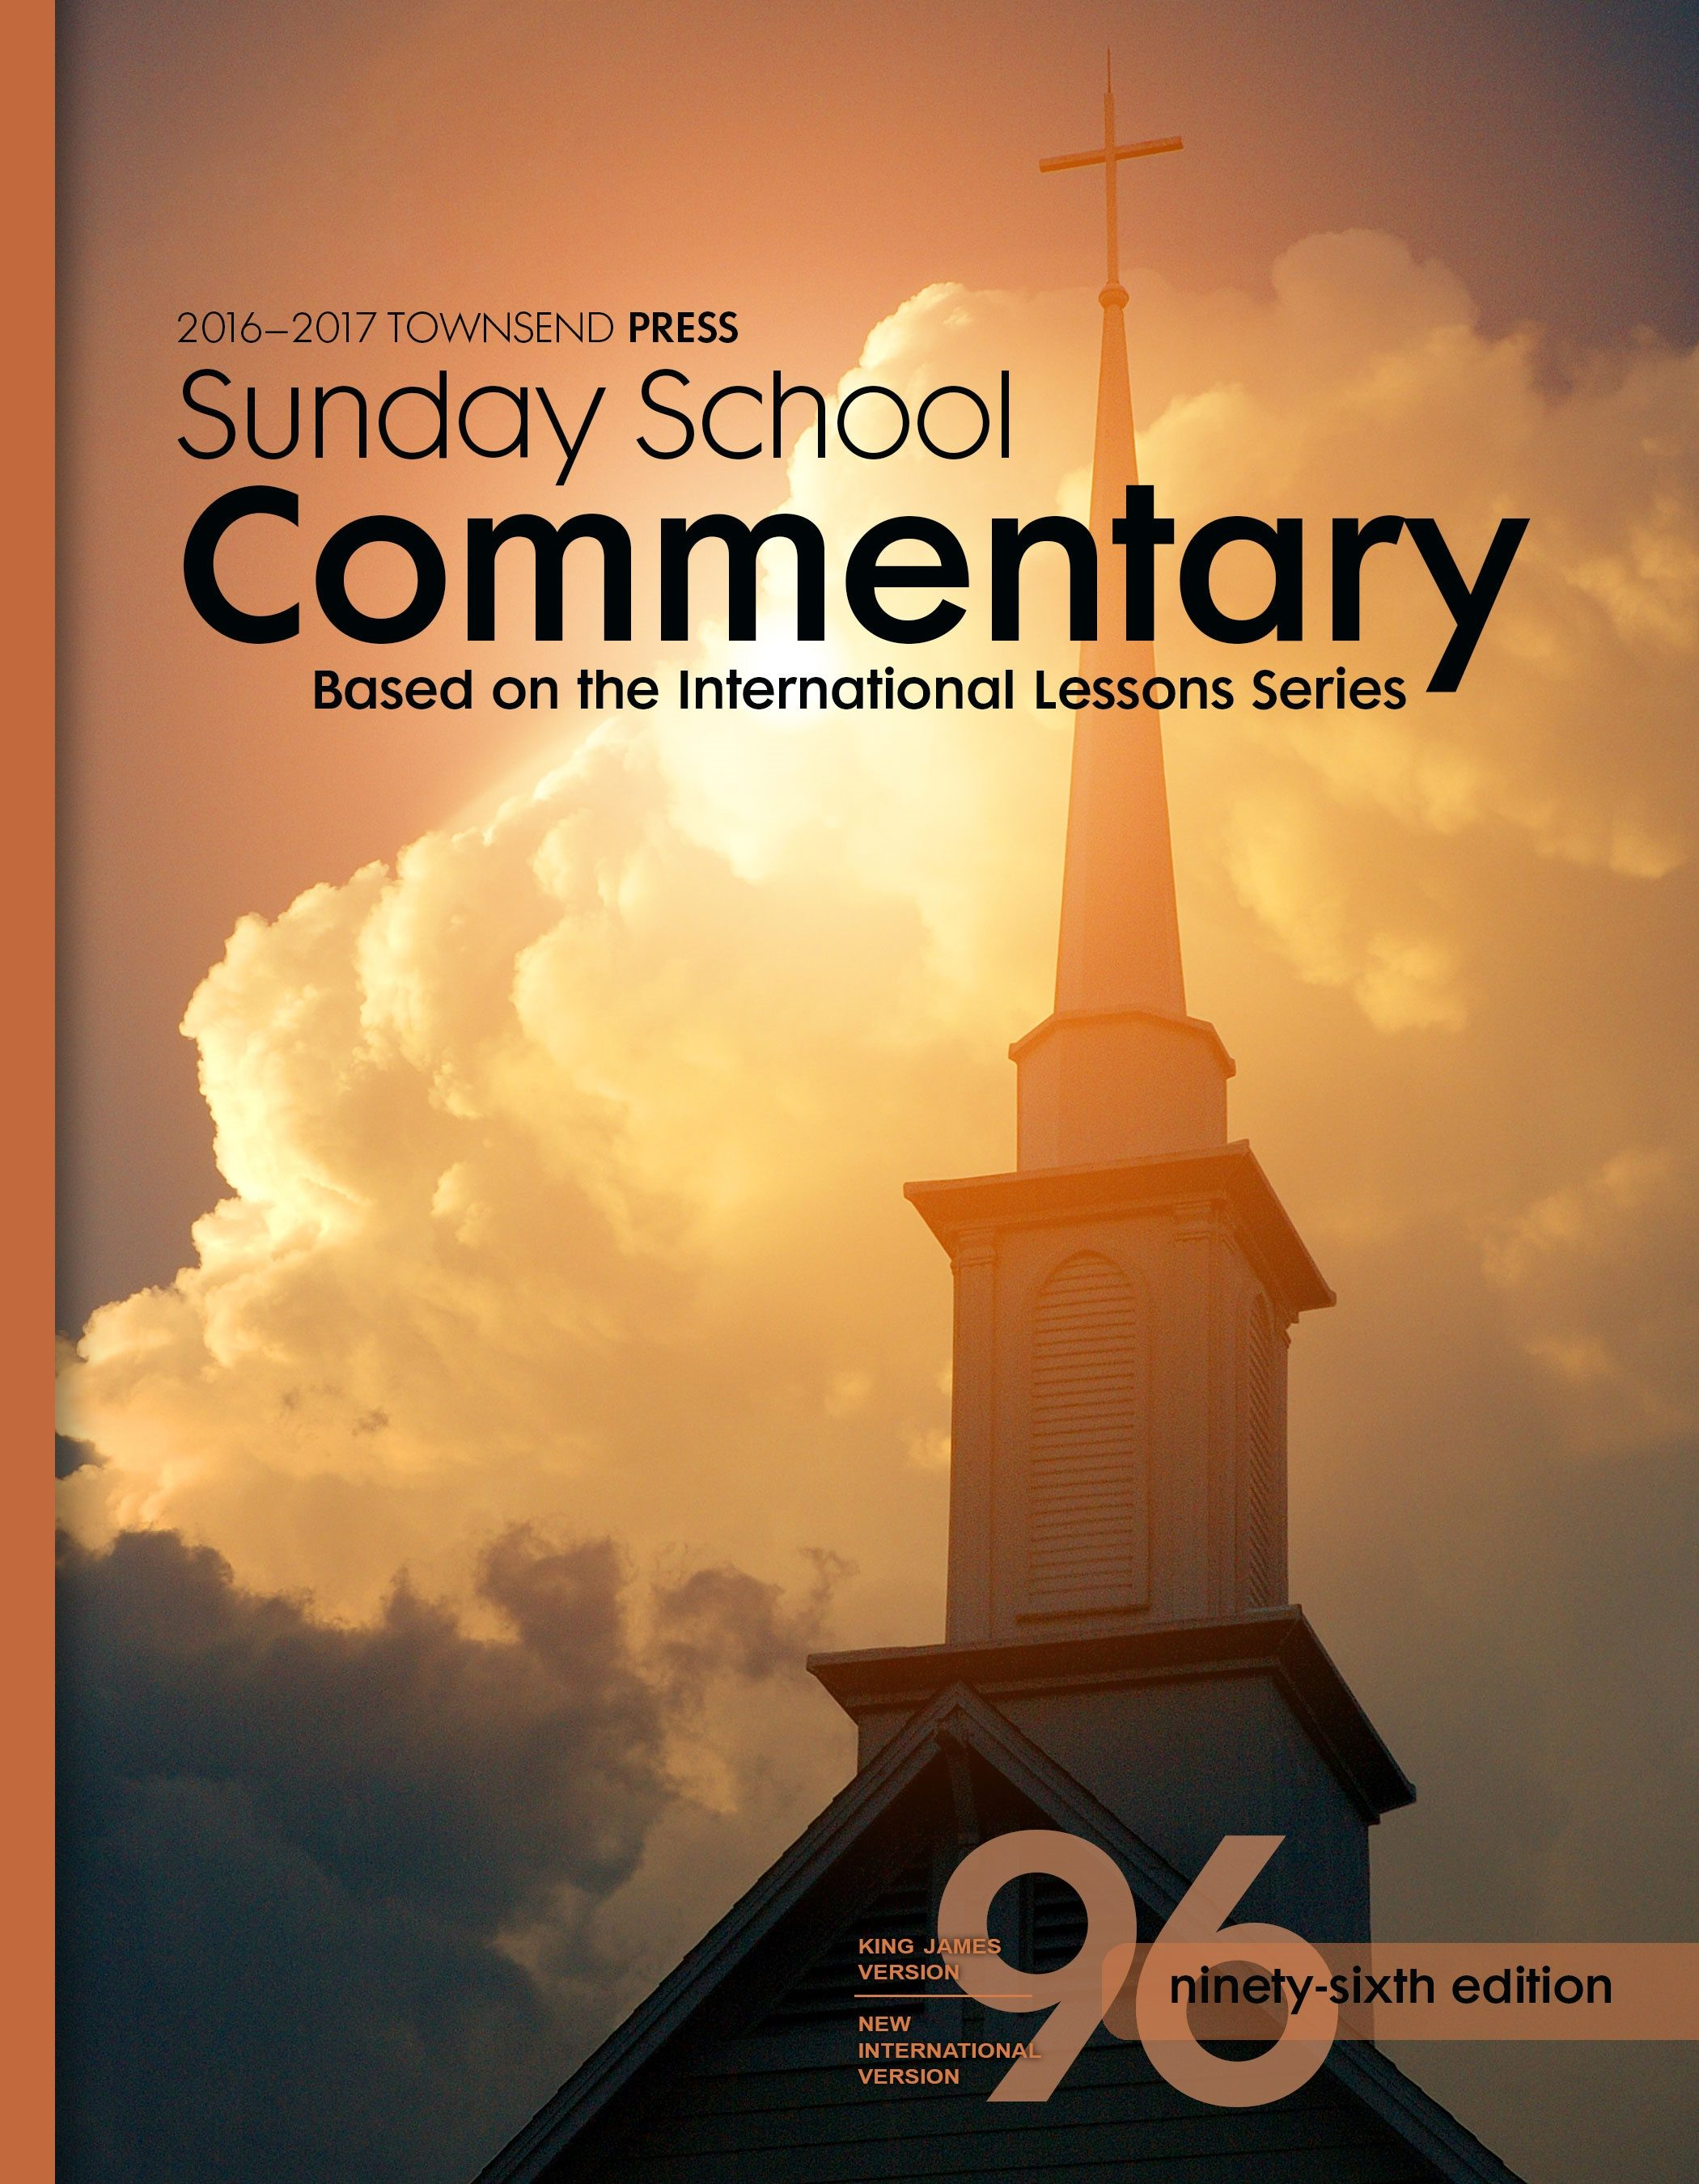 2016-2017 Townsend Press Sunday School Commentary 96th Edition